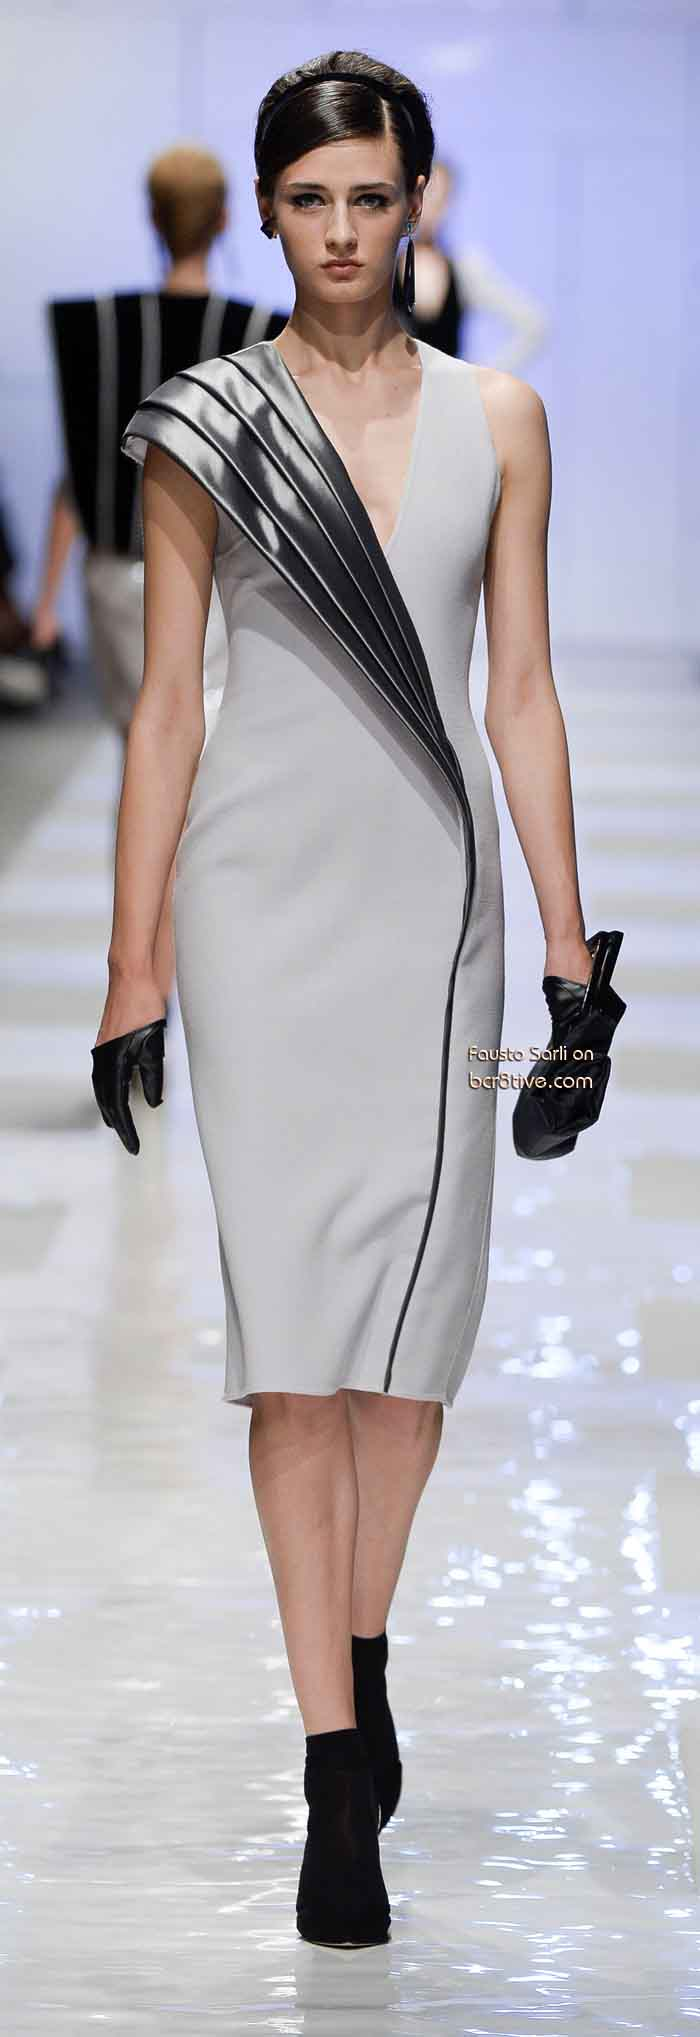 Fausto Sarli Fall Winter 2013-14 Haute Couture